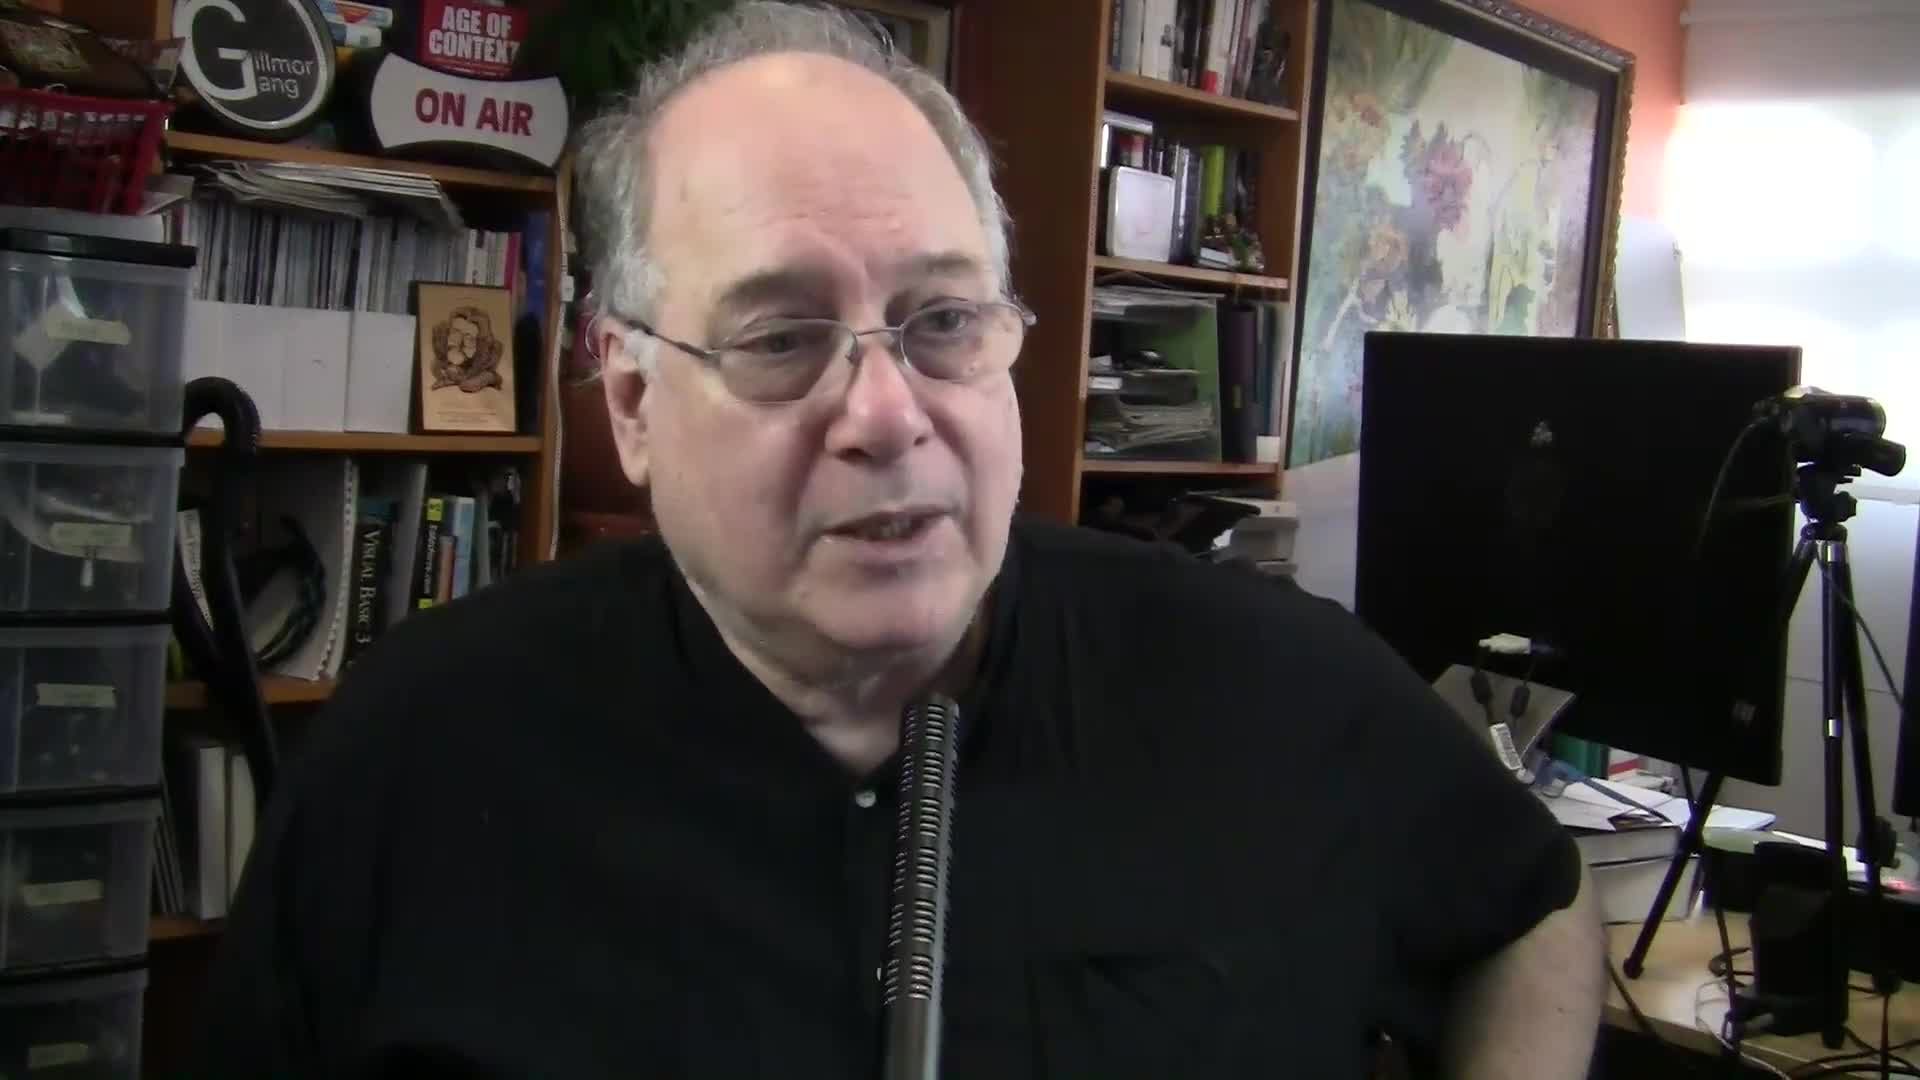 Gillmor Gang: Optimizzle